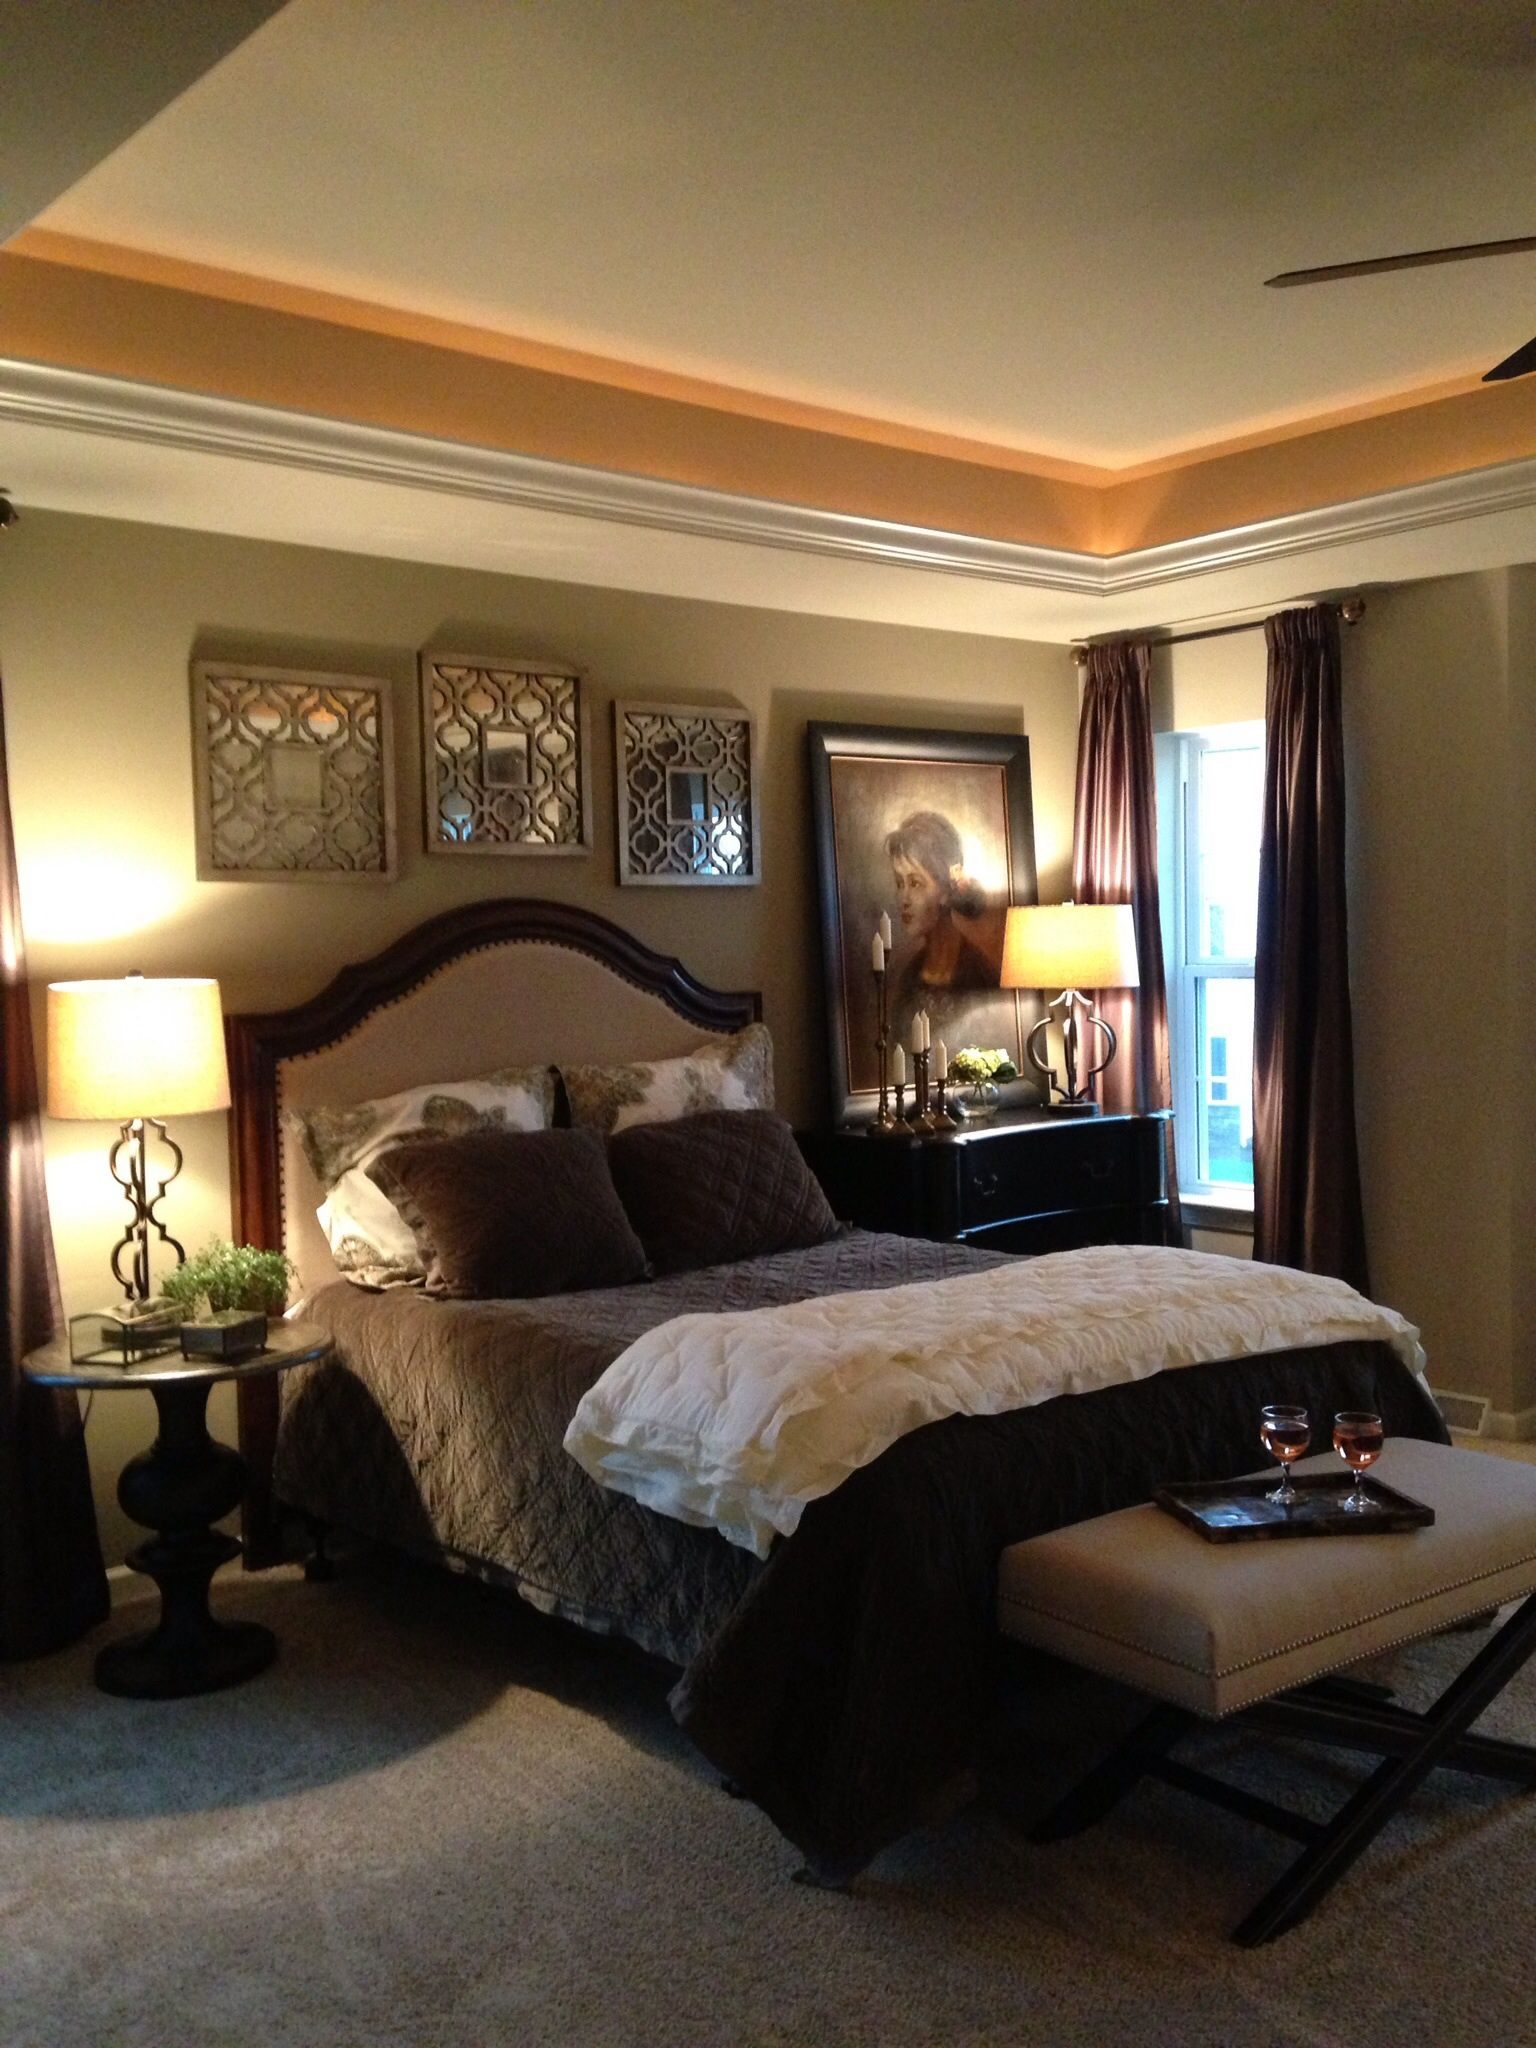 Soft lighting in a tray ceiling Home, Home decor, Wall color